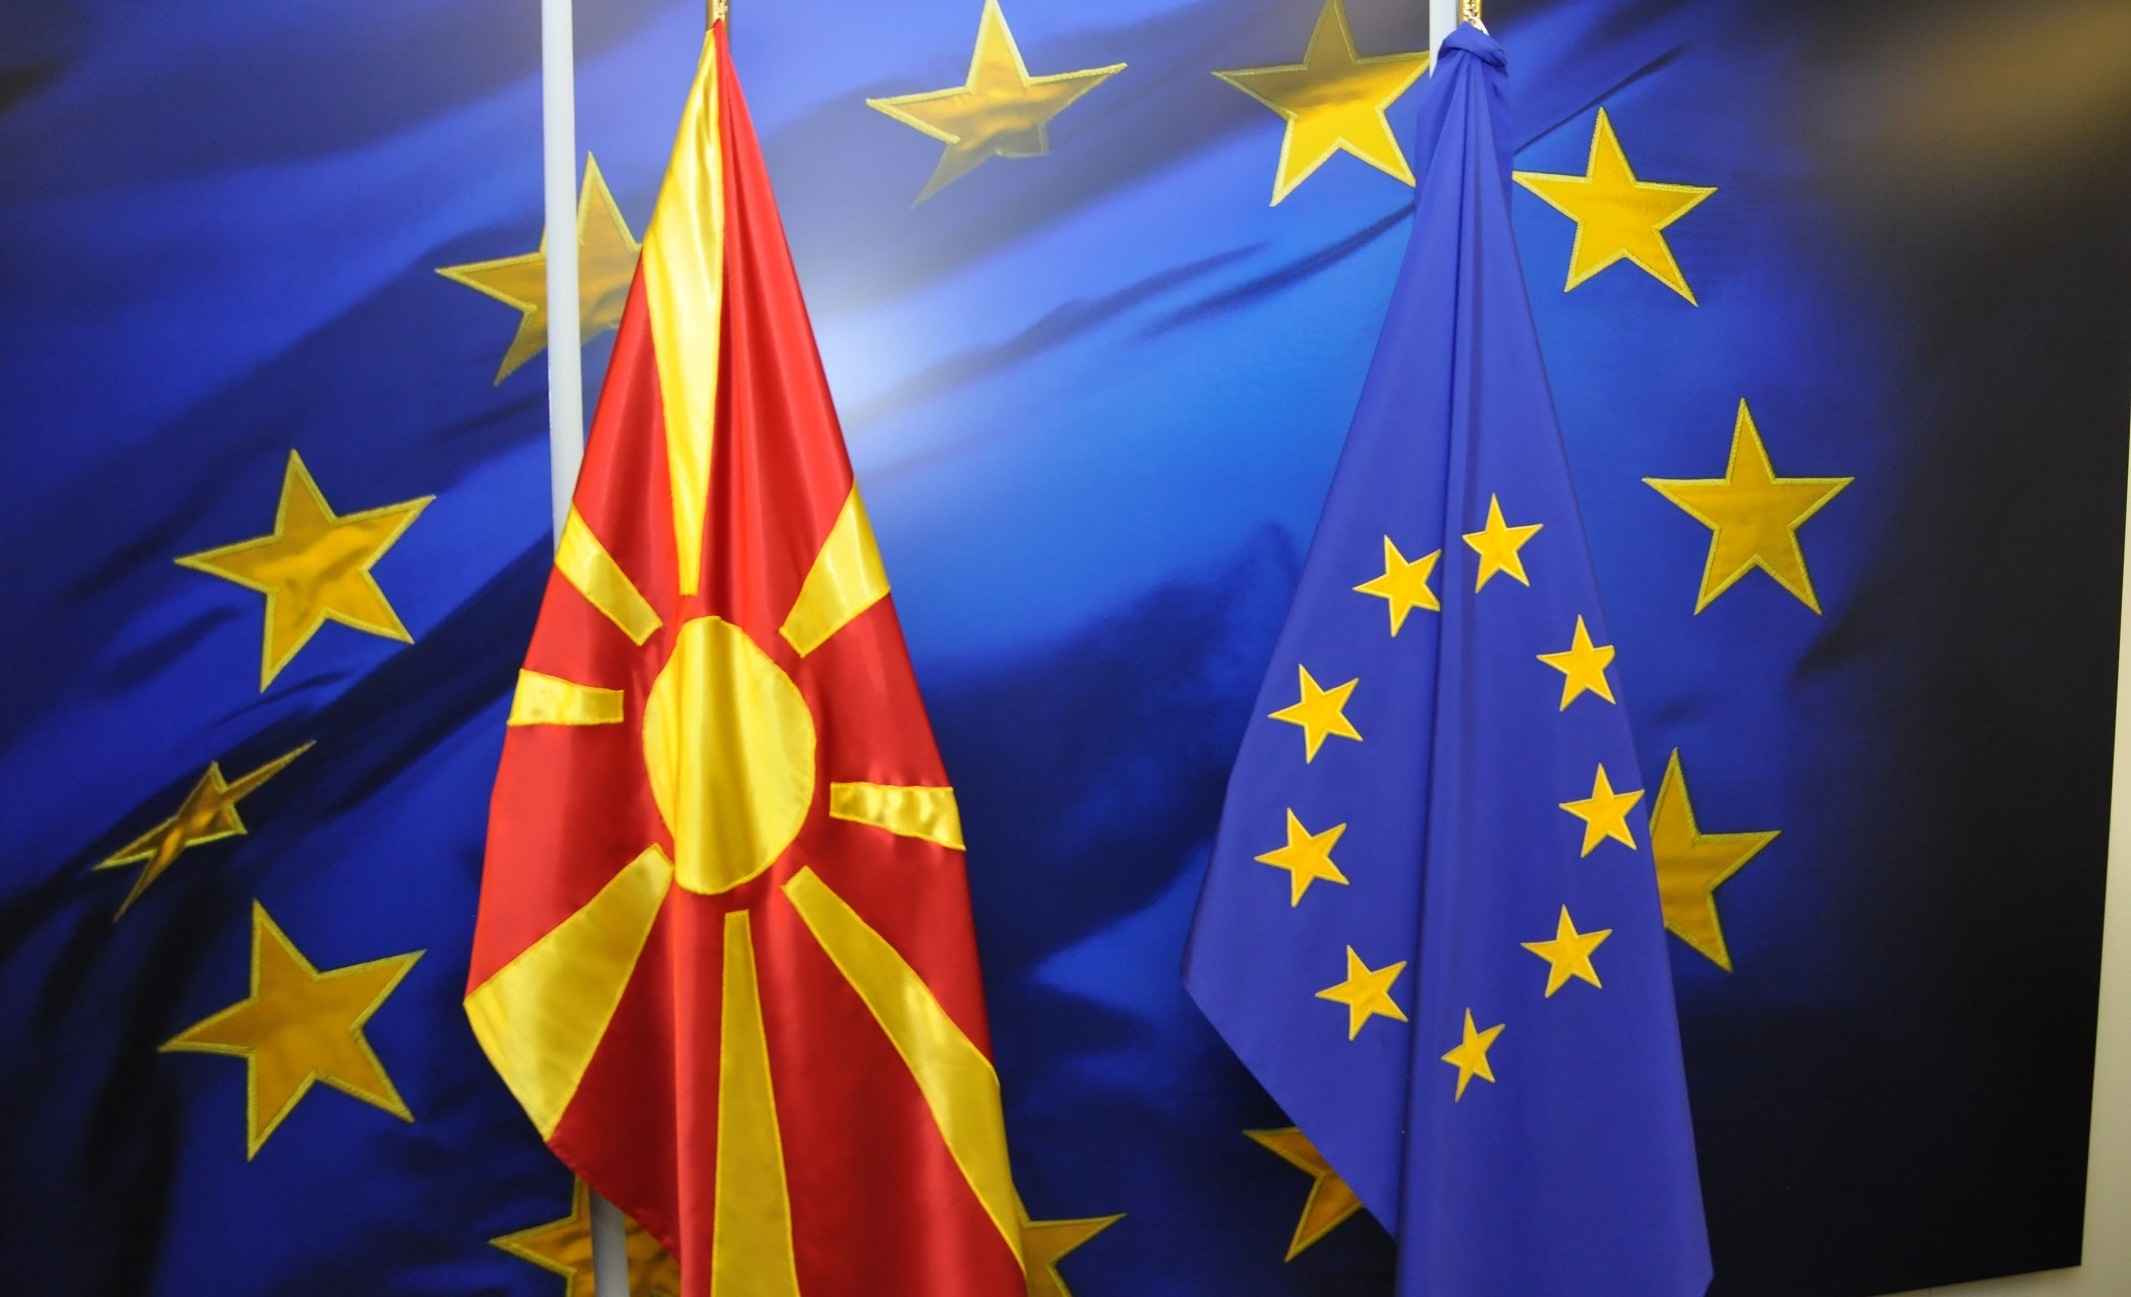 Progress report prompts reactions in North Macedonia